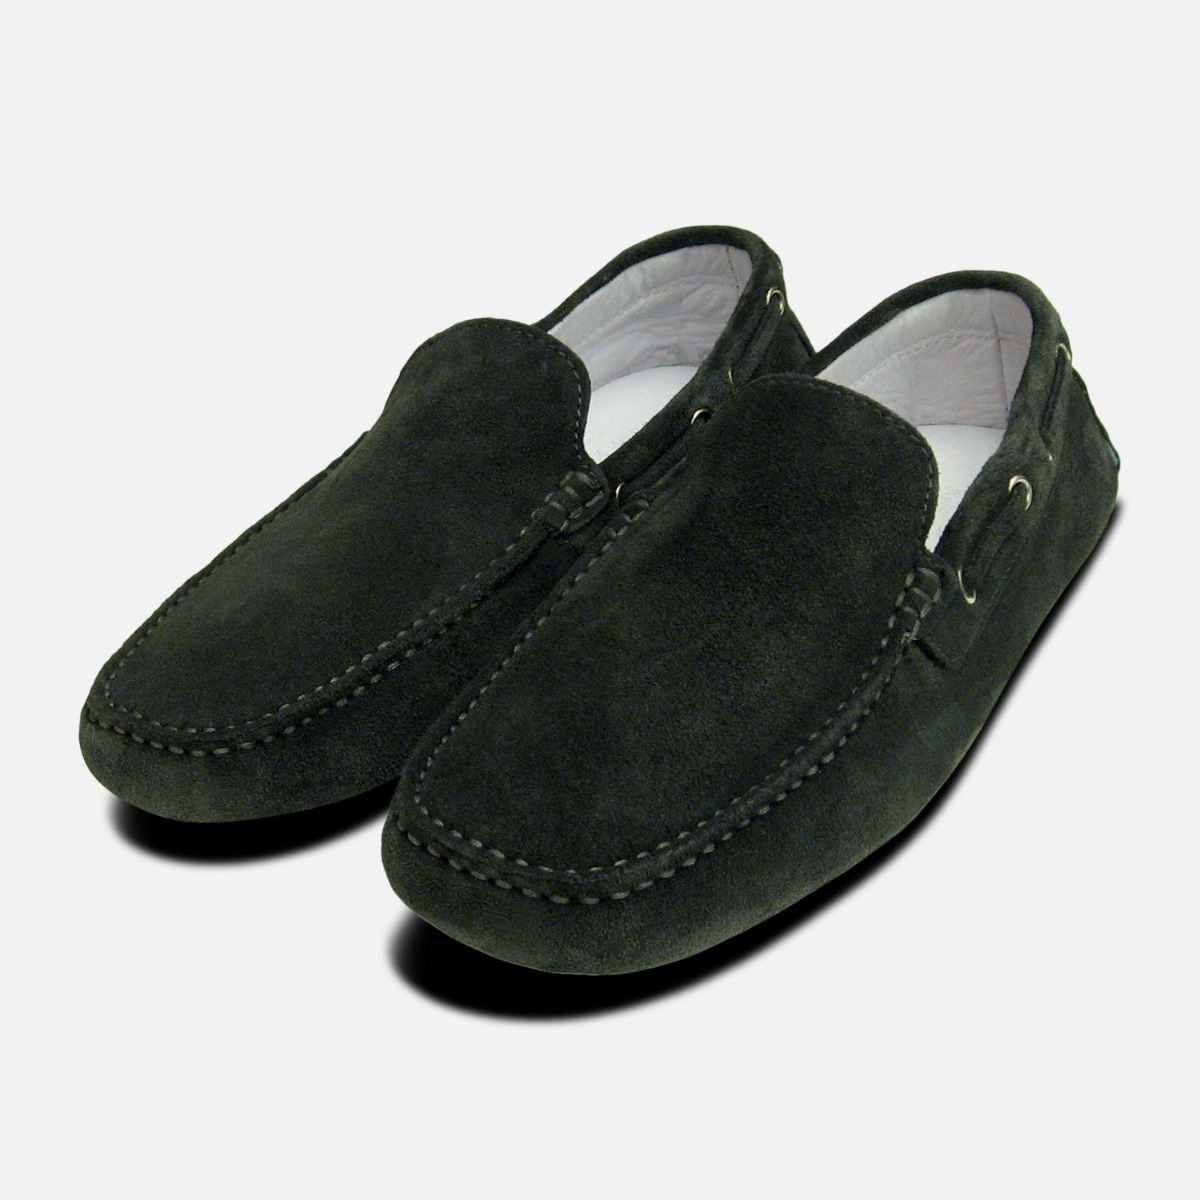 Dark Grey Suede Driving Shoes for Men